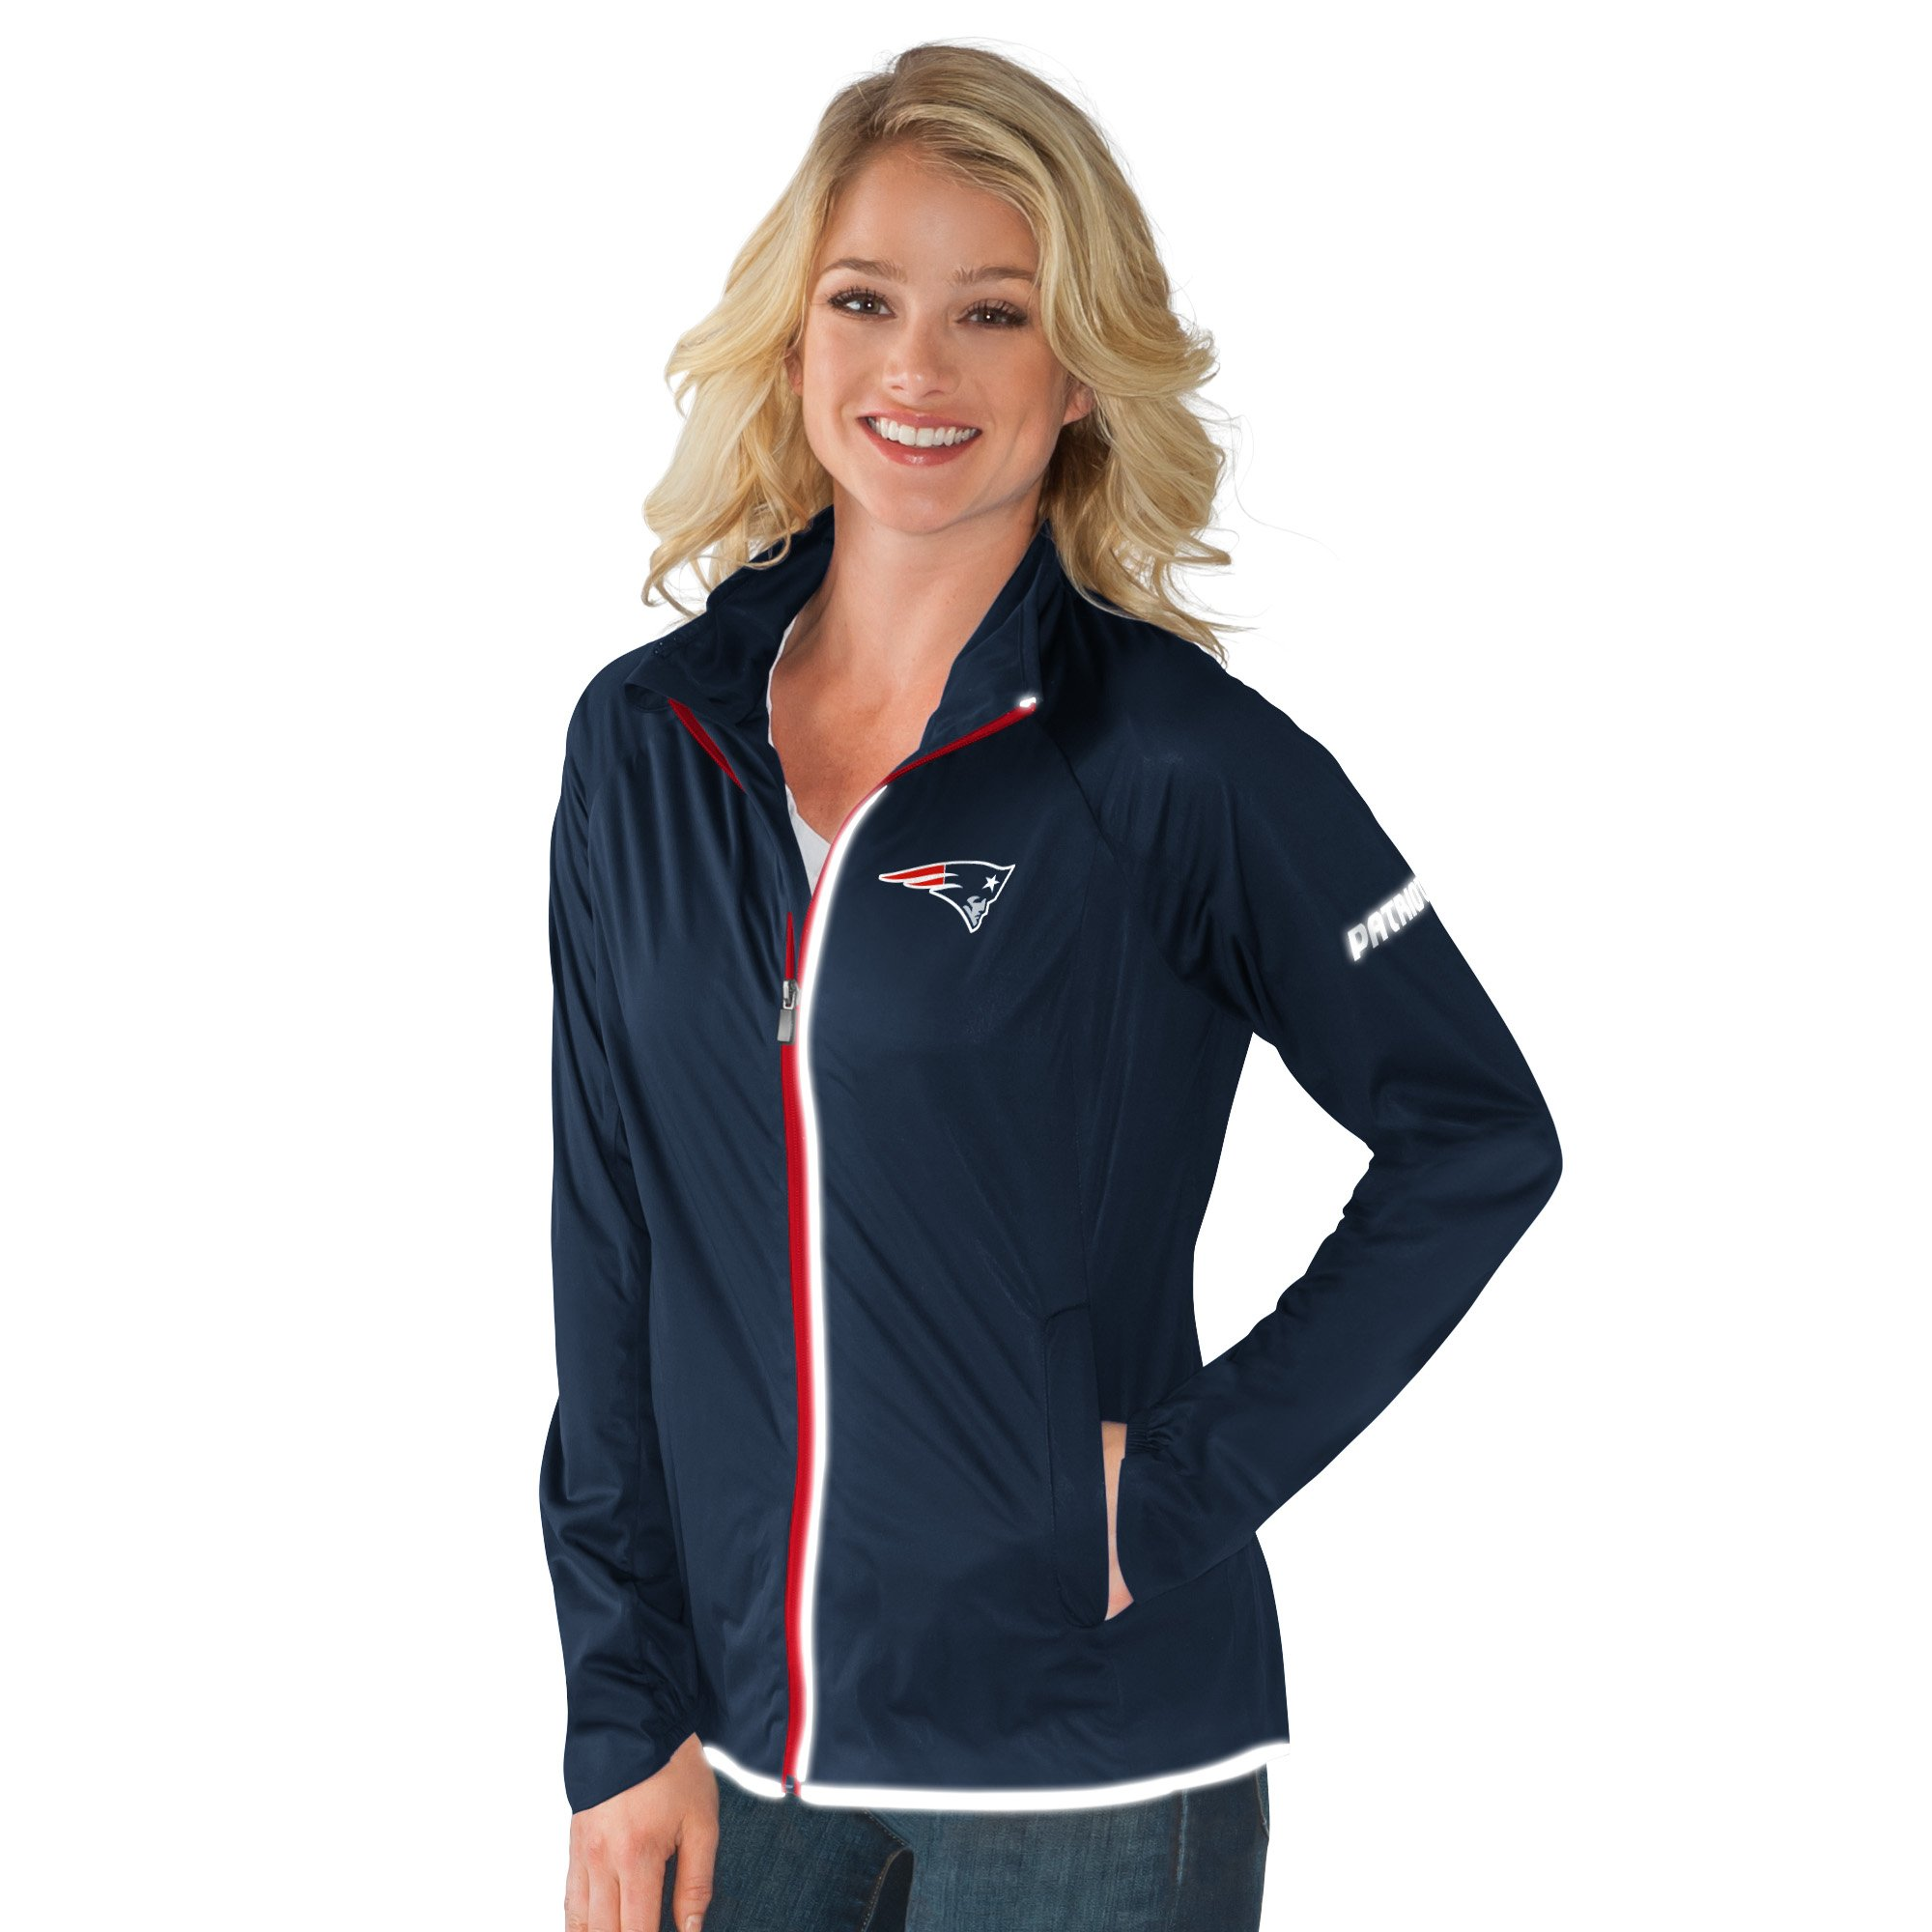 New England Patriots Team Colors Full Zip Women's Track Jacket by G-III Sports